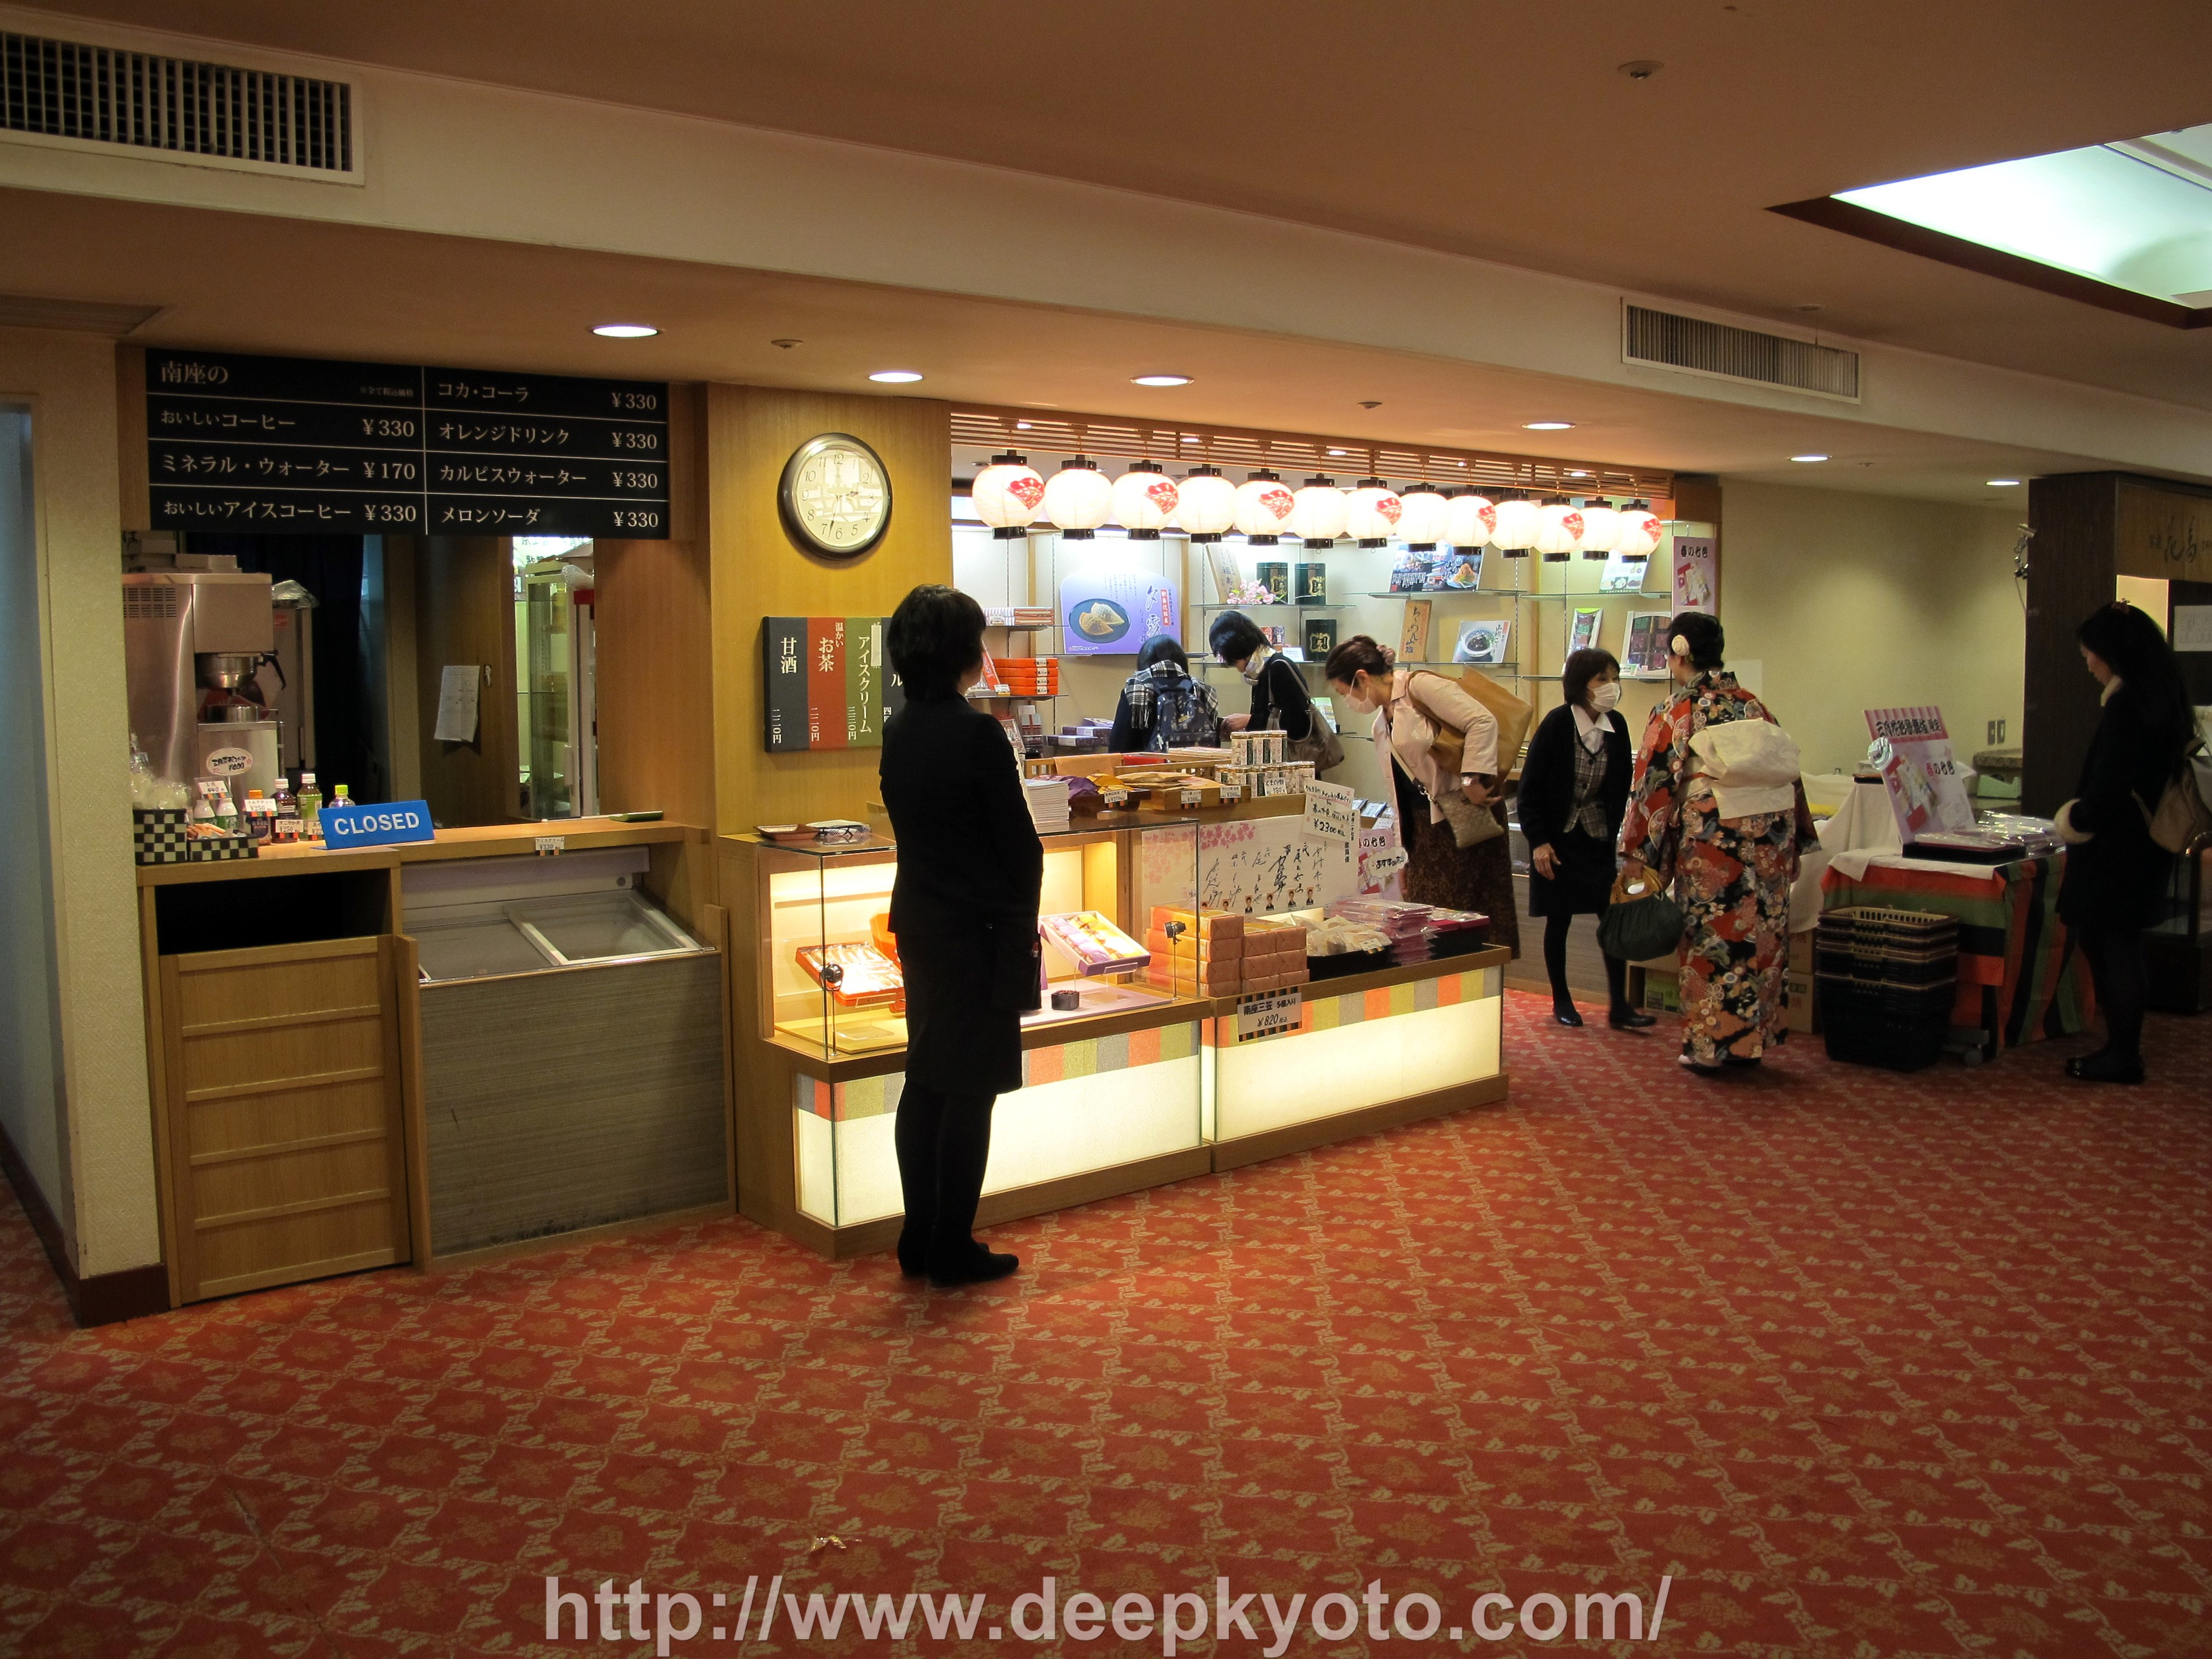 The refreshment stand in Kyoto's Minamiza Theater.